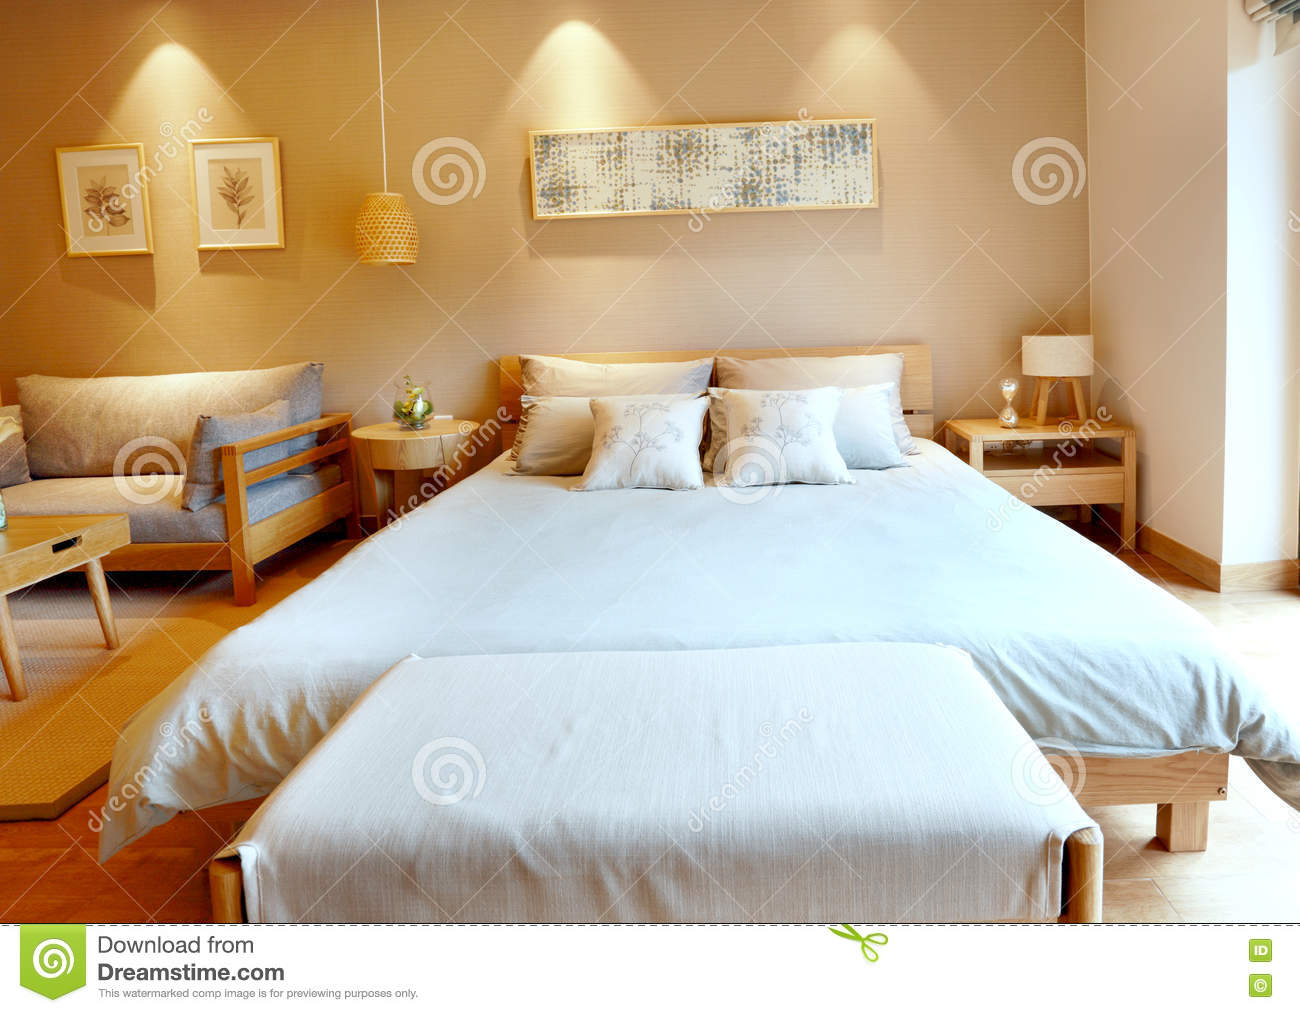 Modern Minimalist Style Bedroom Furnished Room Stock Image - Image ...